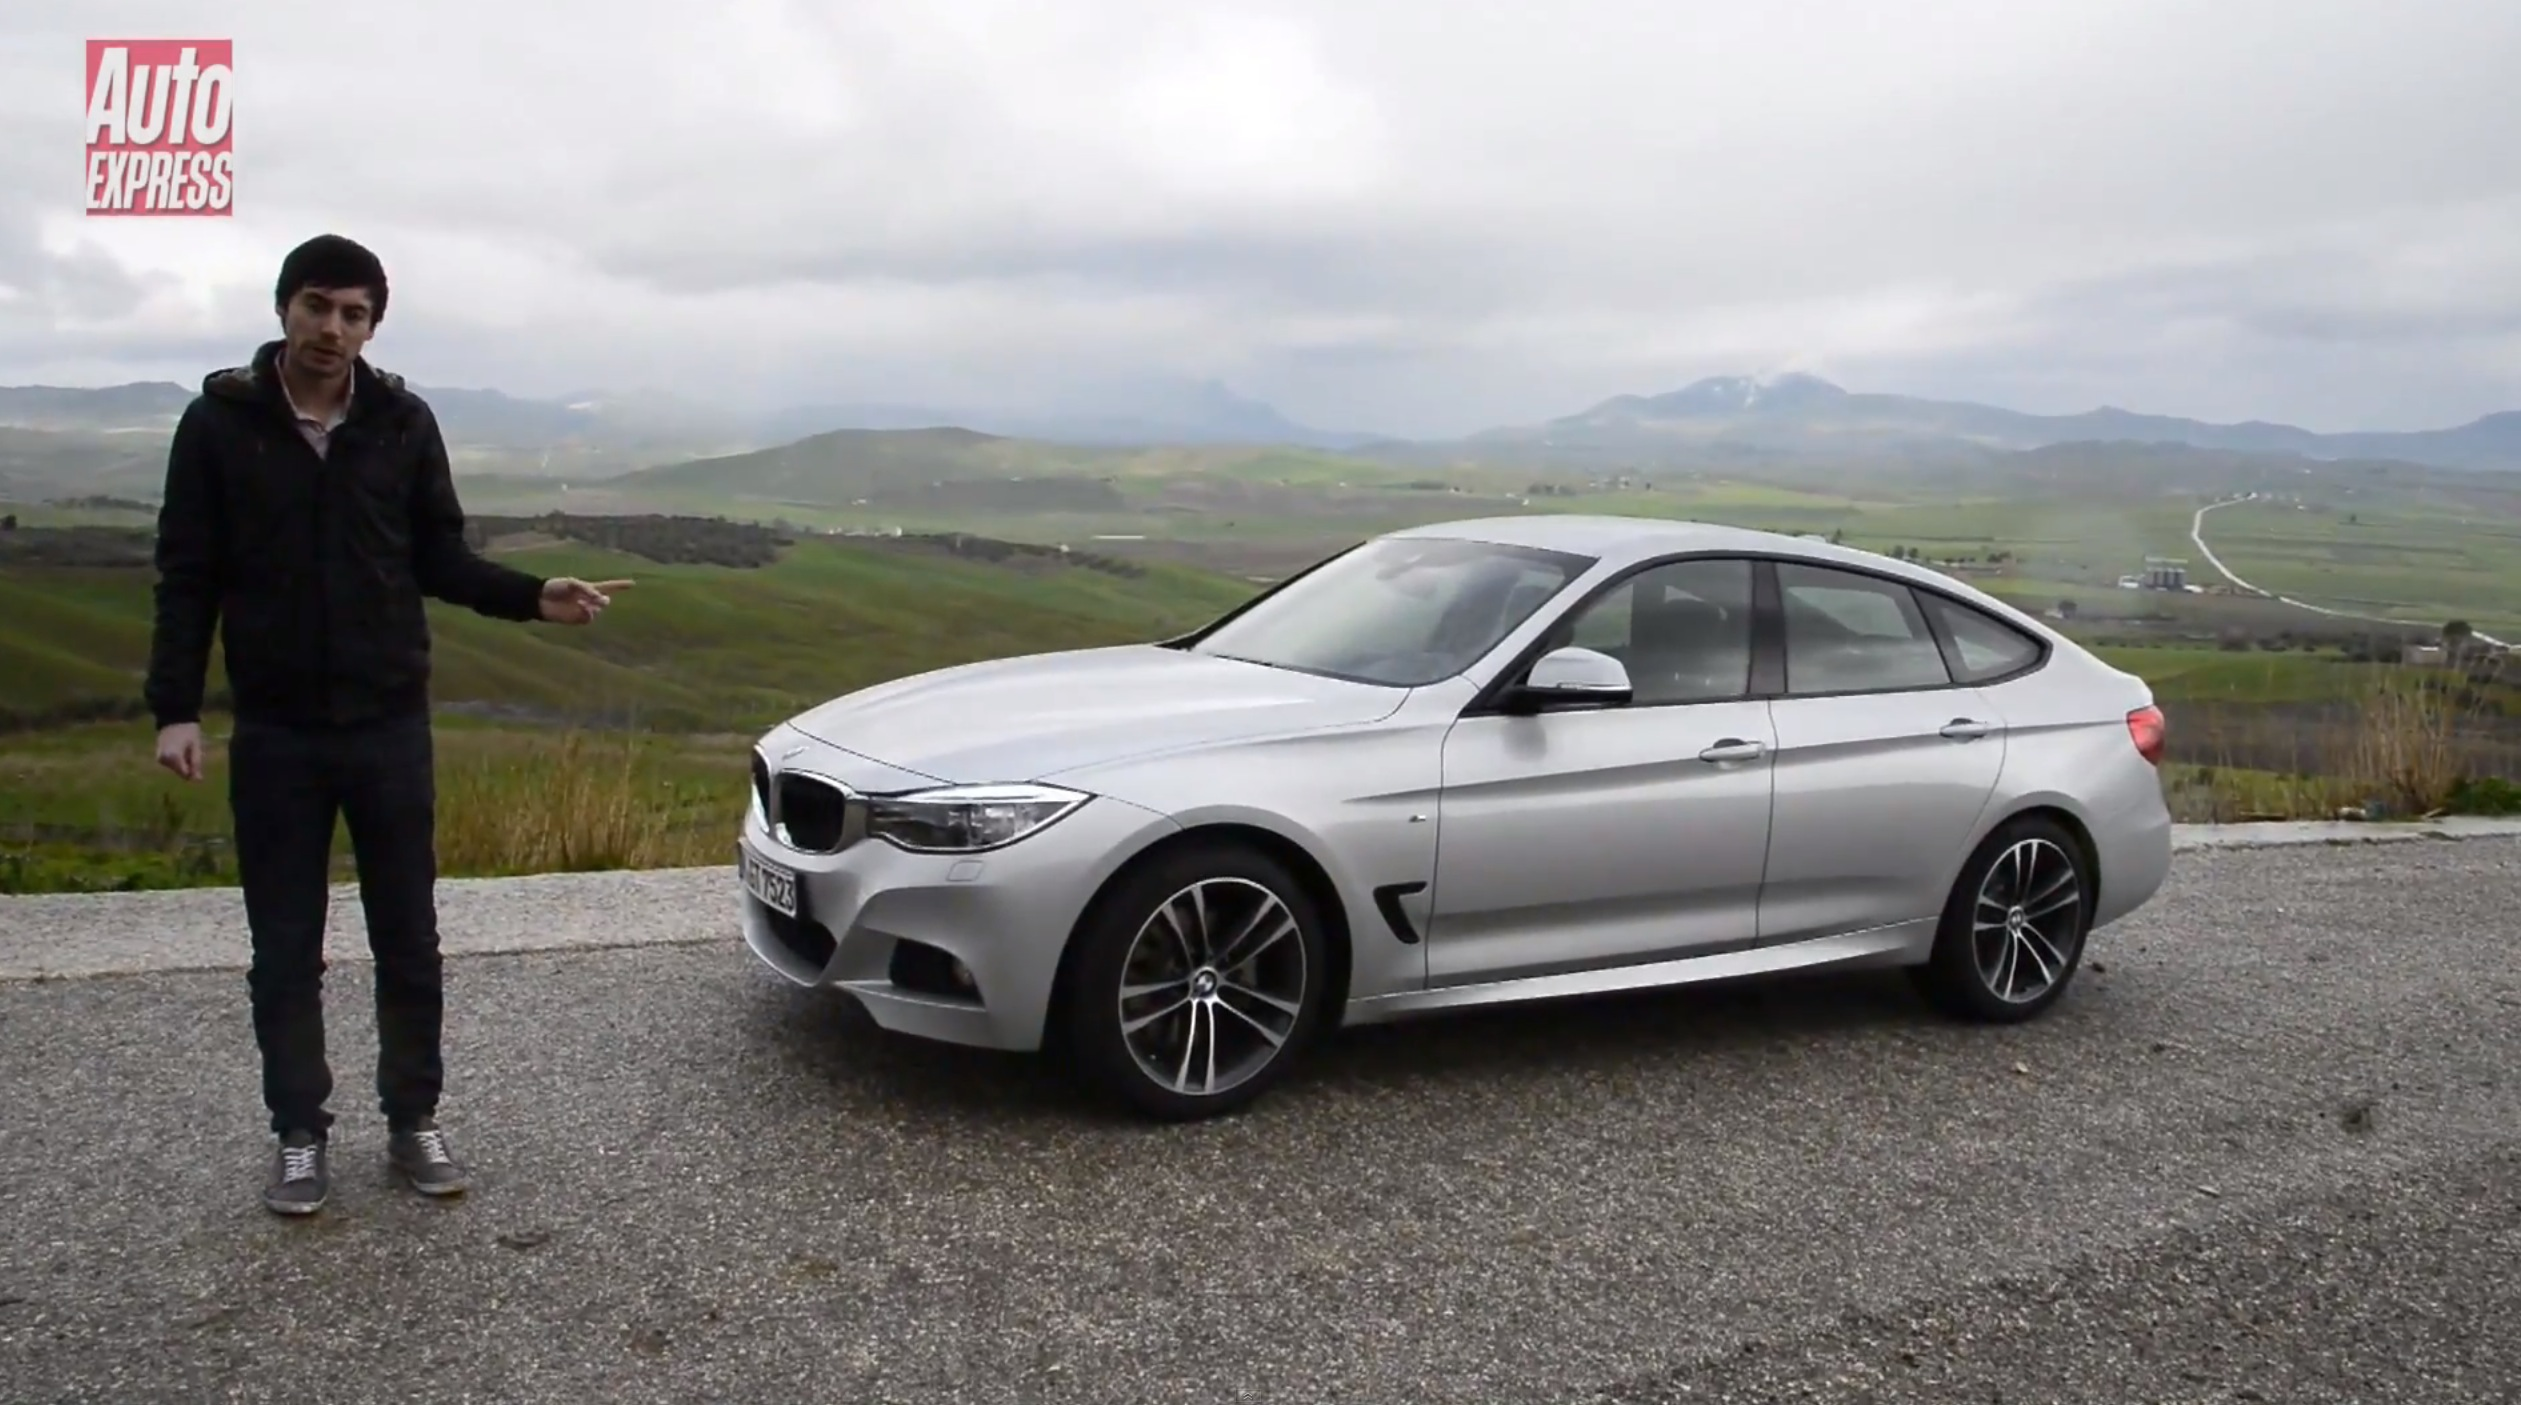 335i Gt M Sport Video Review Autoexpress